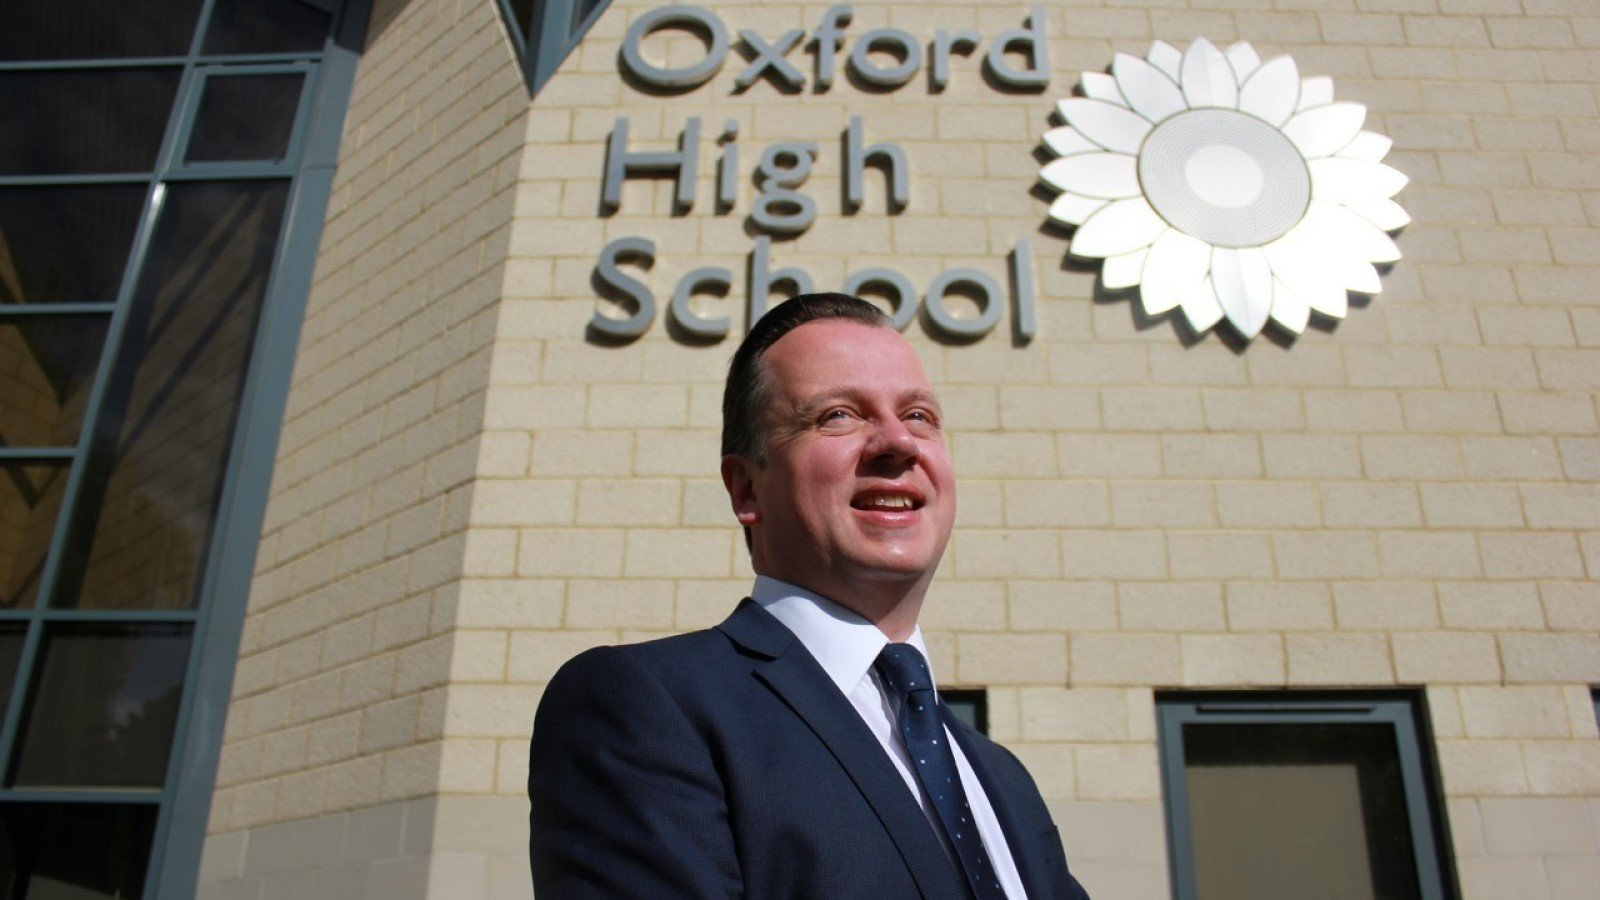 Dr Philip Hills stands down from Oxford High School